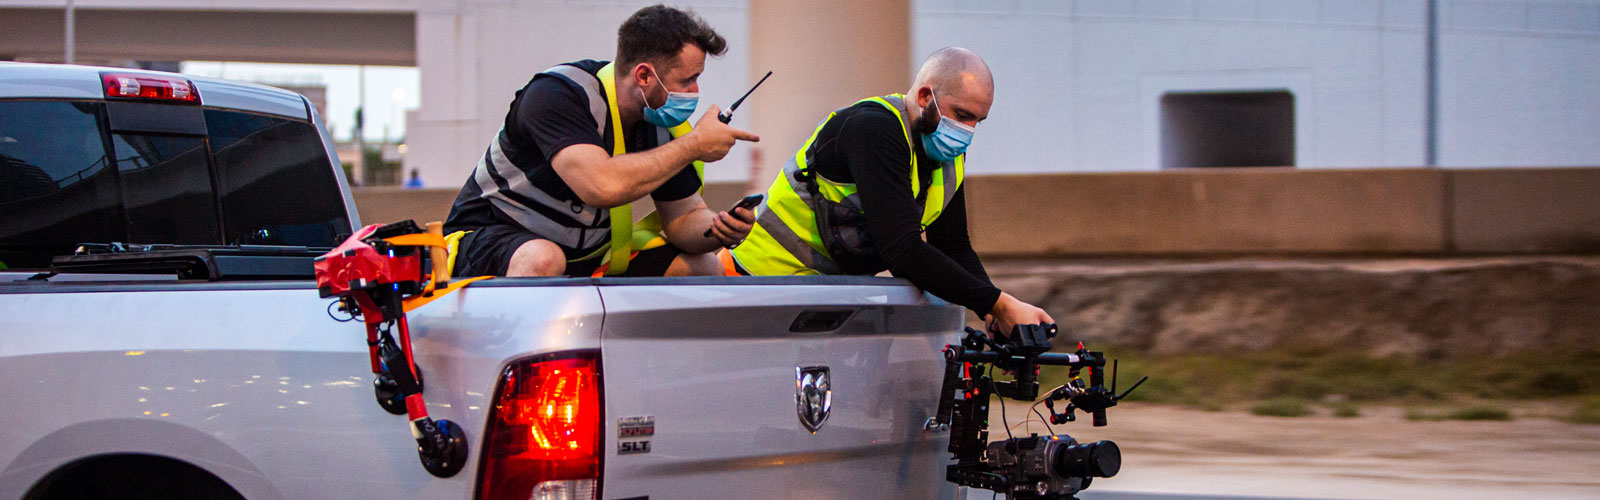 Shooting with FX9 from rear of a truck in Dubai